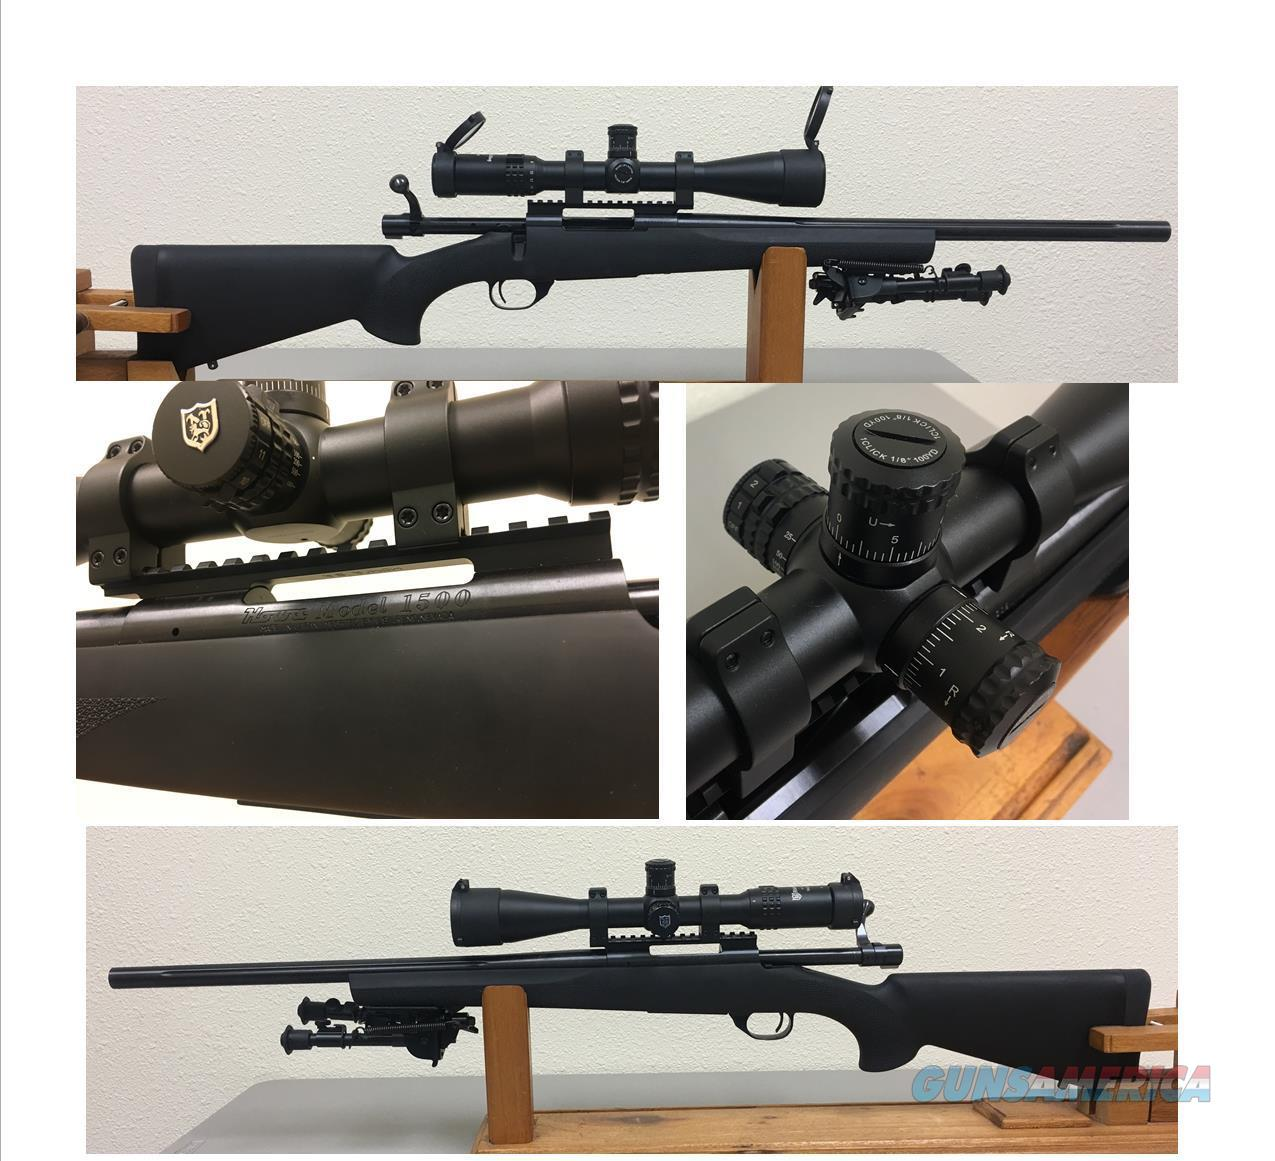 308 Howa Model 1500 Hogue Stock   Guns > Rifles > Howa Rifles